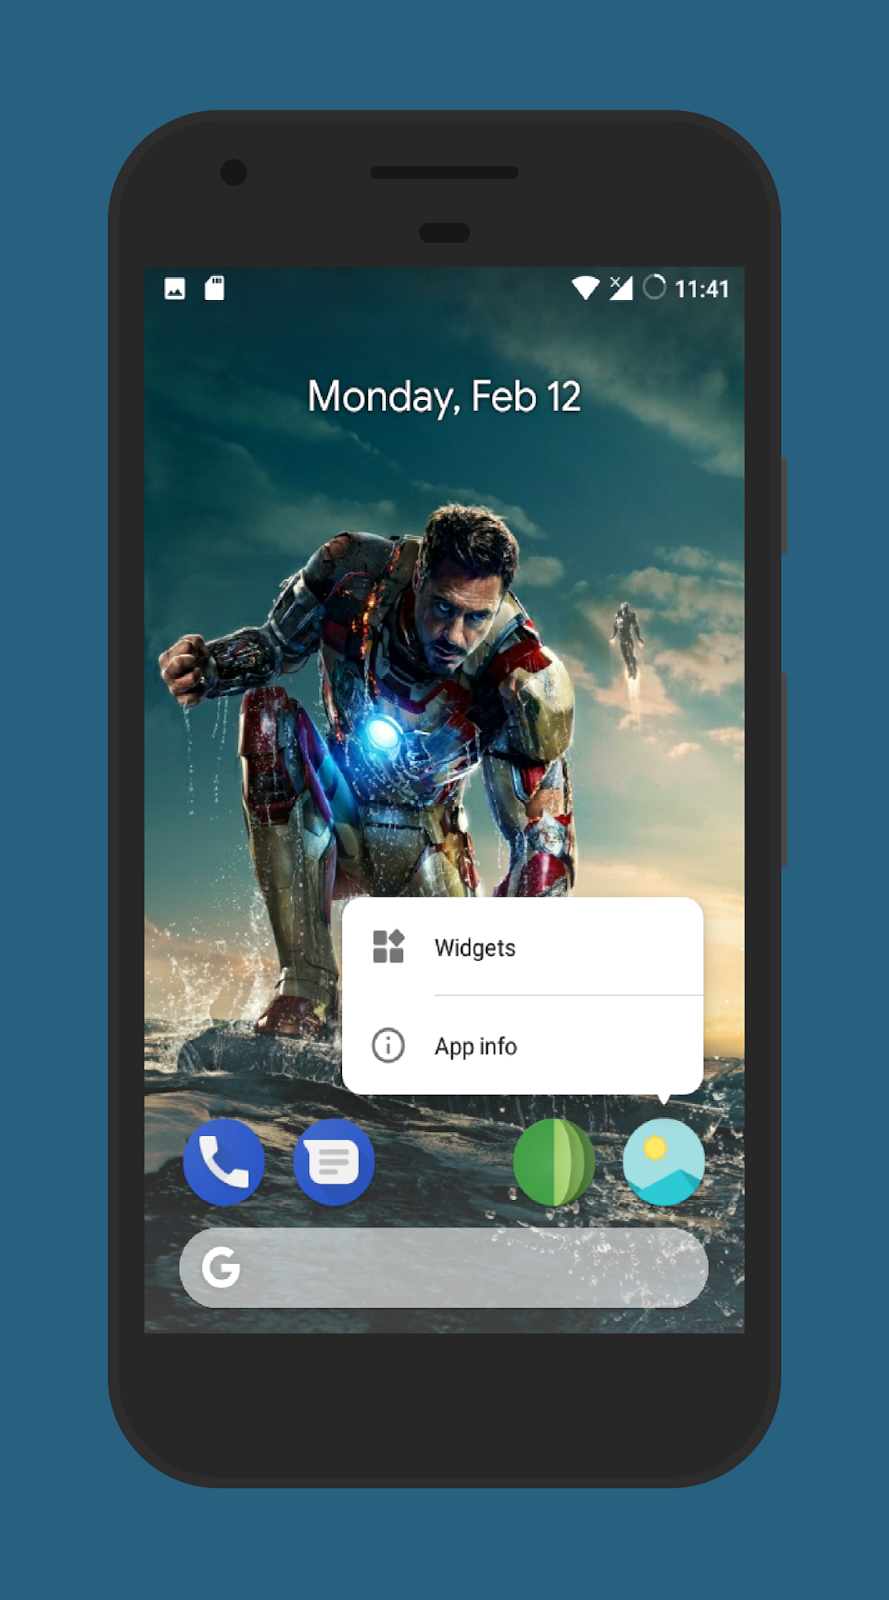 Pixel Launcher V 3 1 Latest APK for Android - Geeks4roms